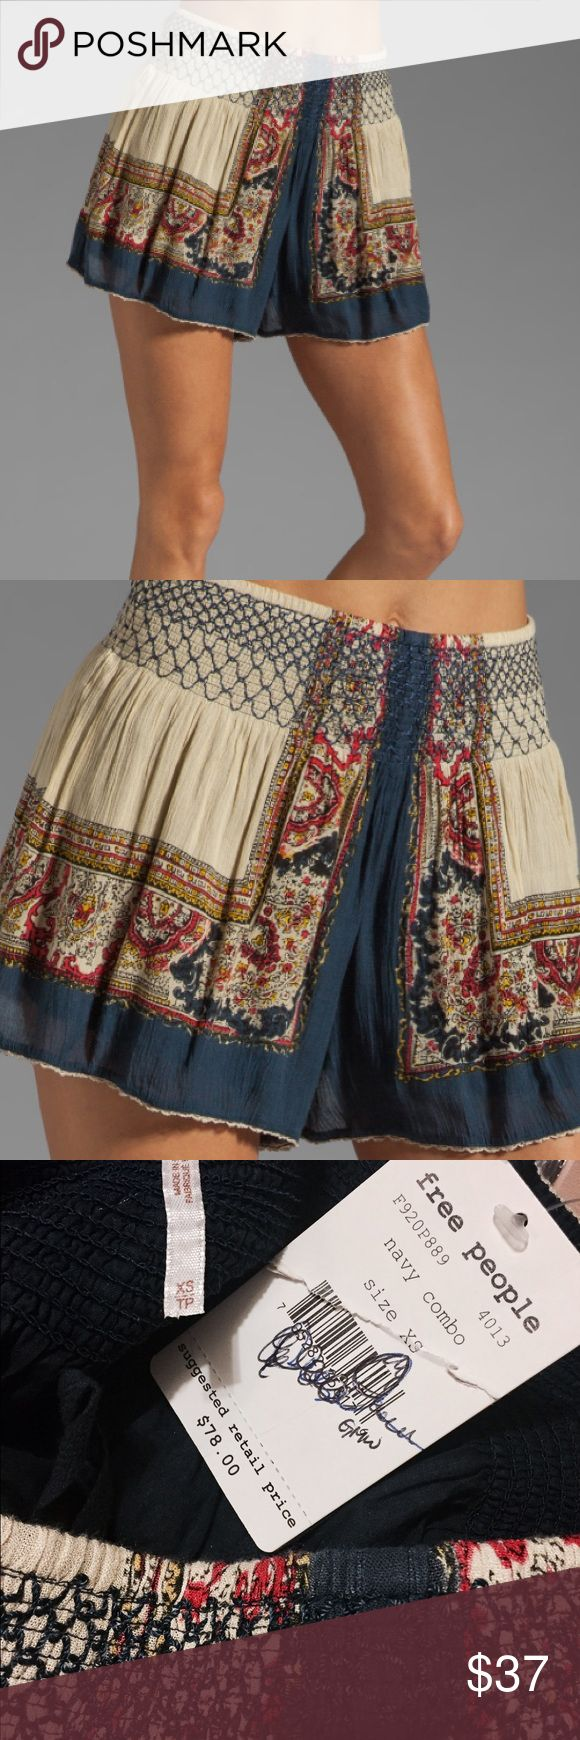 NWT! Free People scarf printed short Free People shorts have a beautiful and detailed design. Purchased from ABC studios and was originally meant to be used on the set of Girl Meets World. Never used, brand new with tags! Free People Shorts